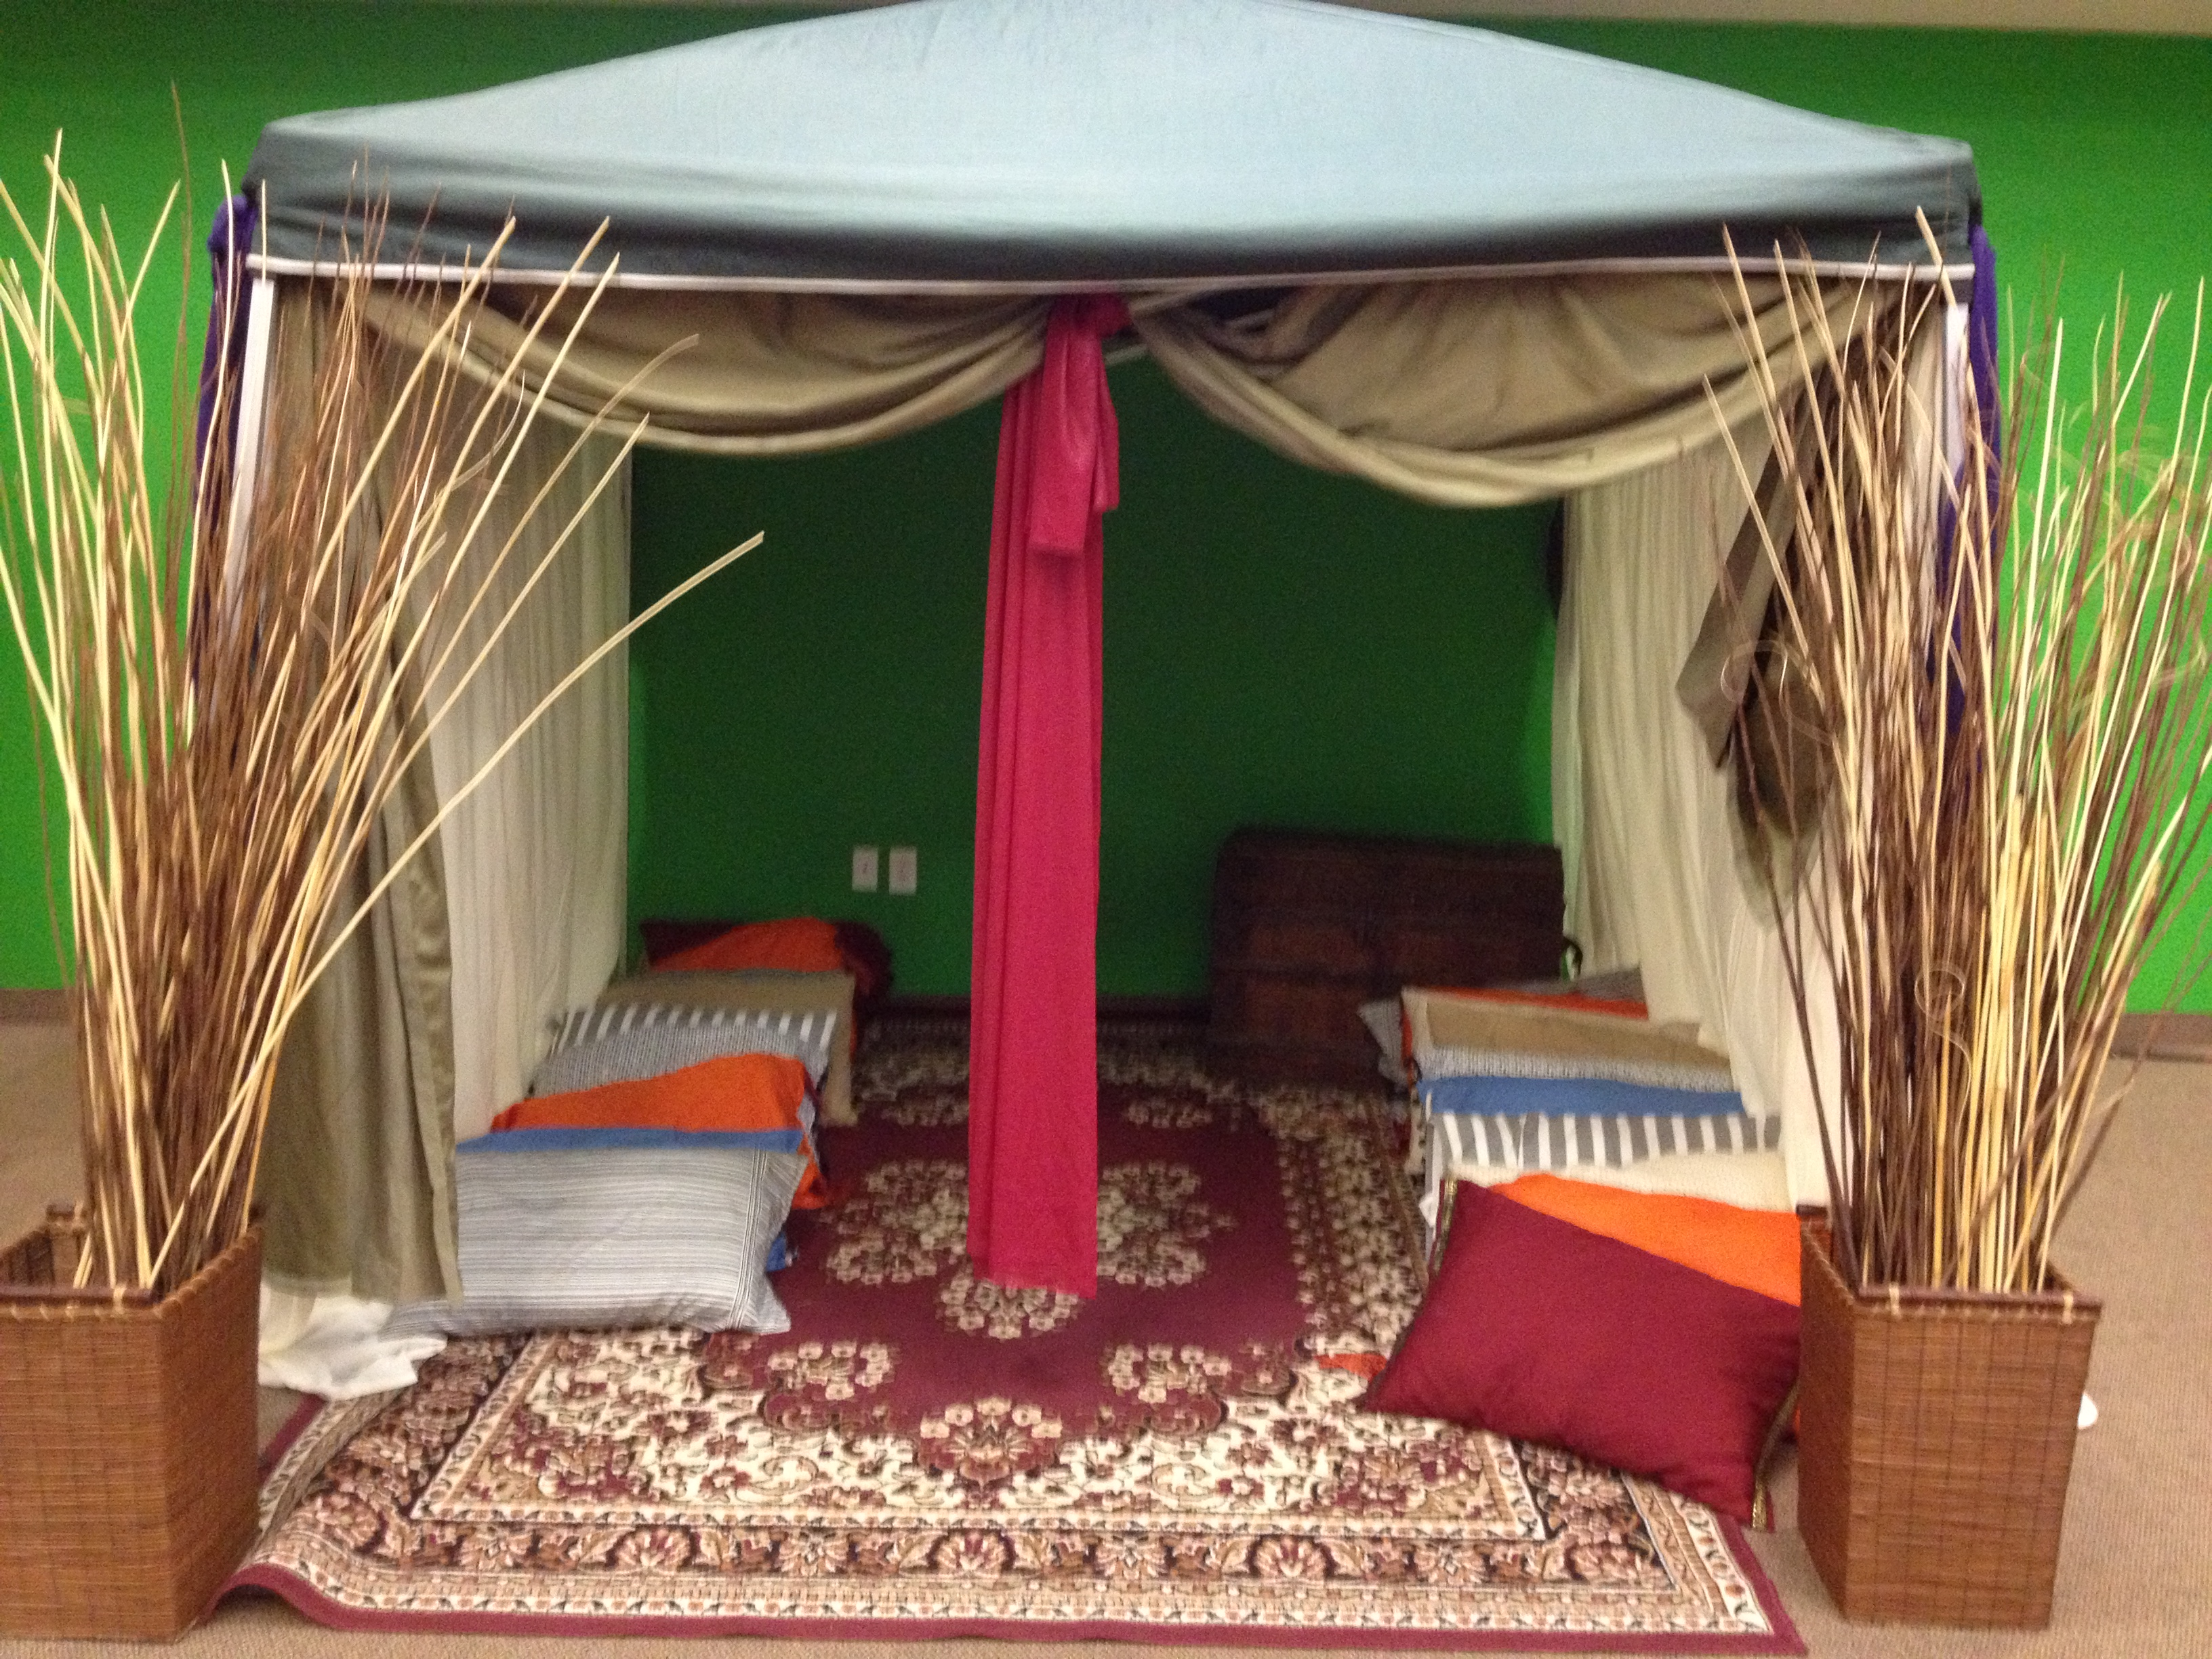 Bedroom Canopy Ideas Three Great Decorating Ideas For An Egyptian Or Ancient